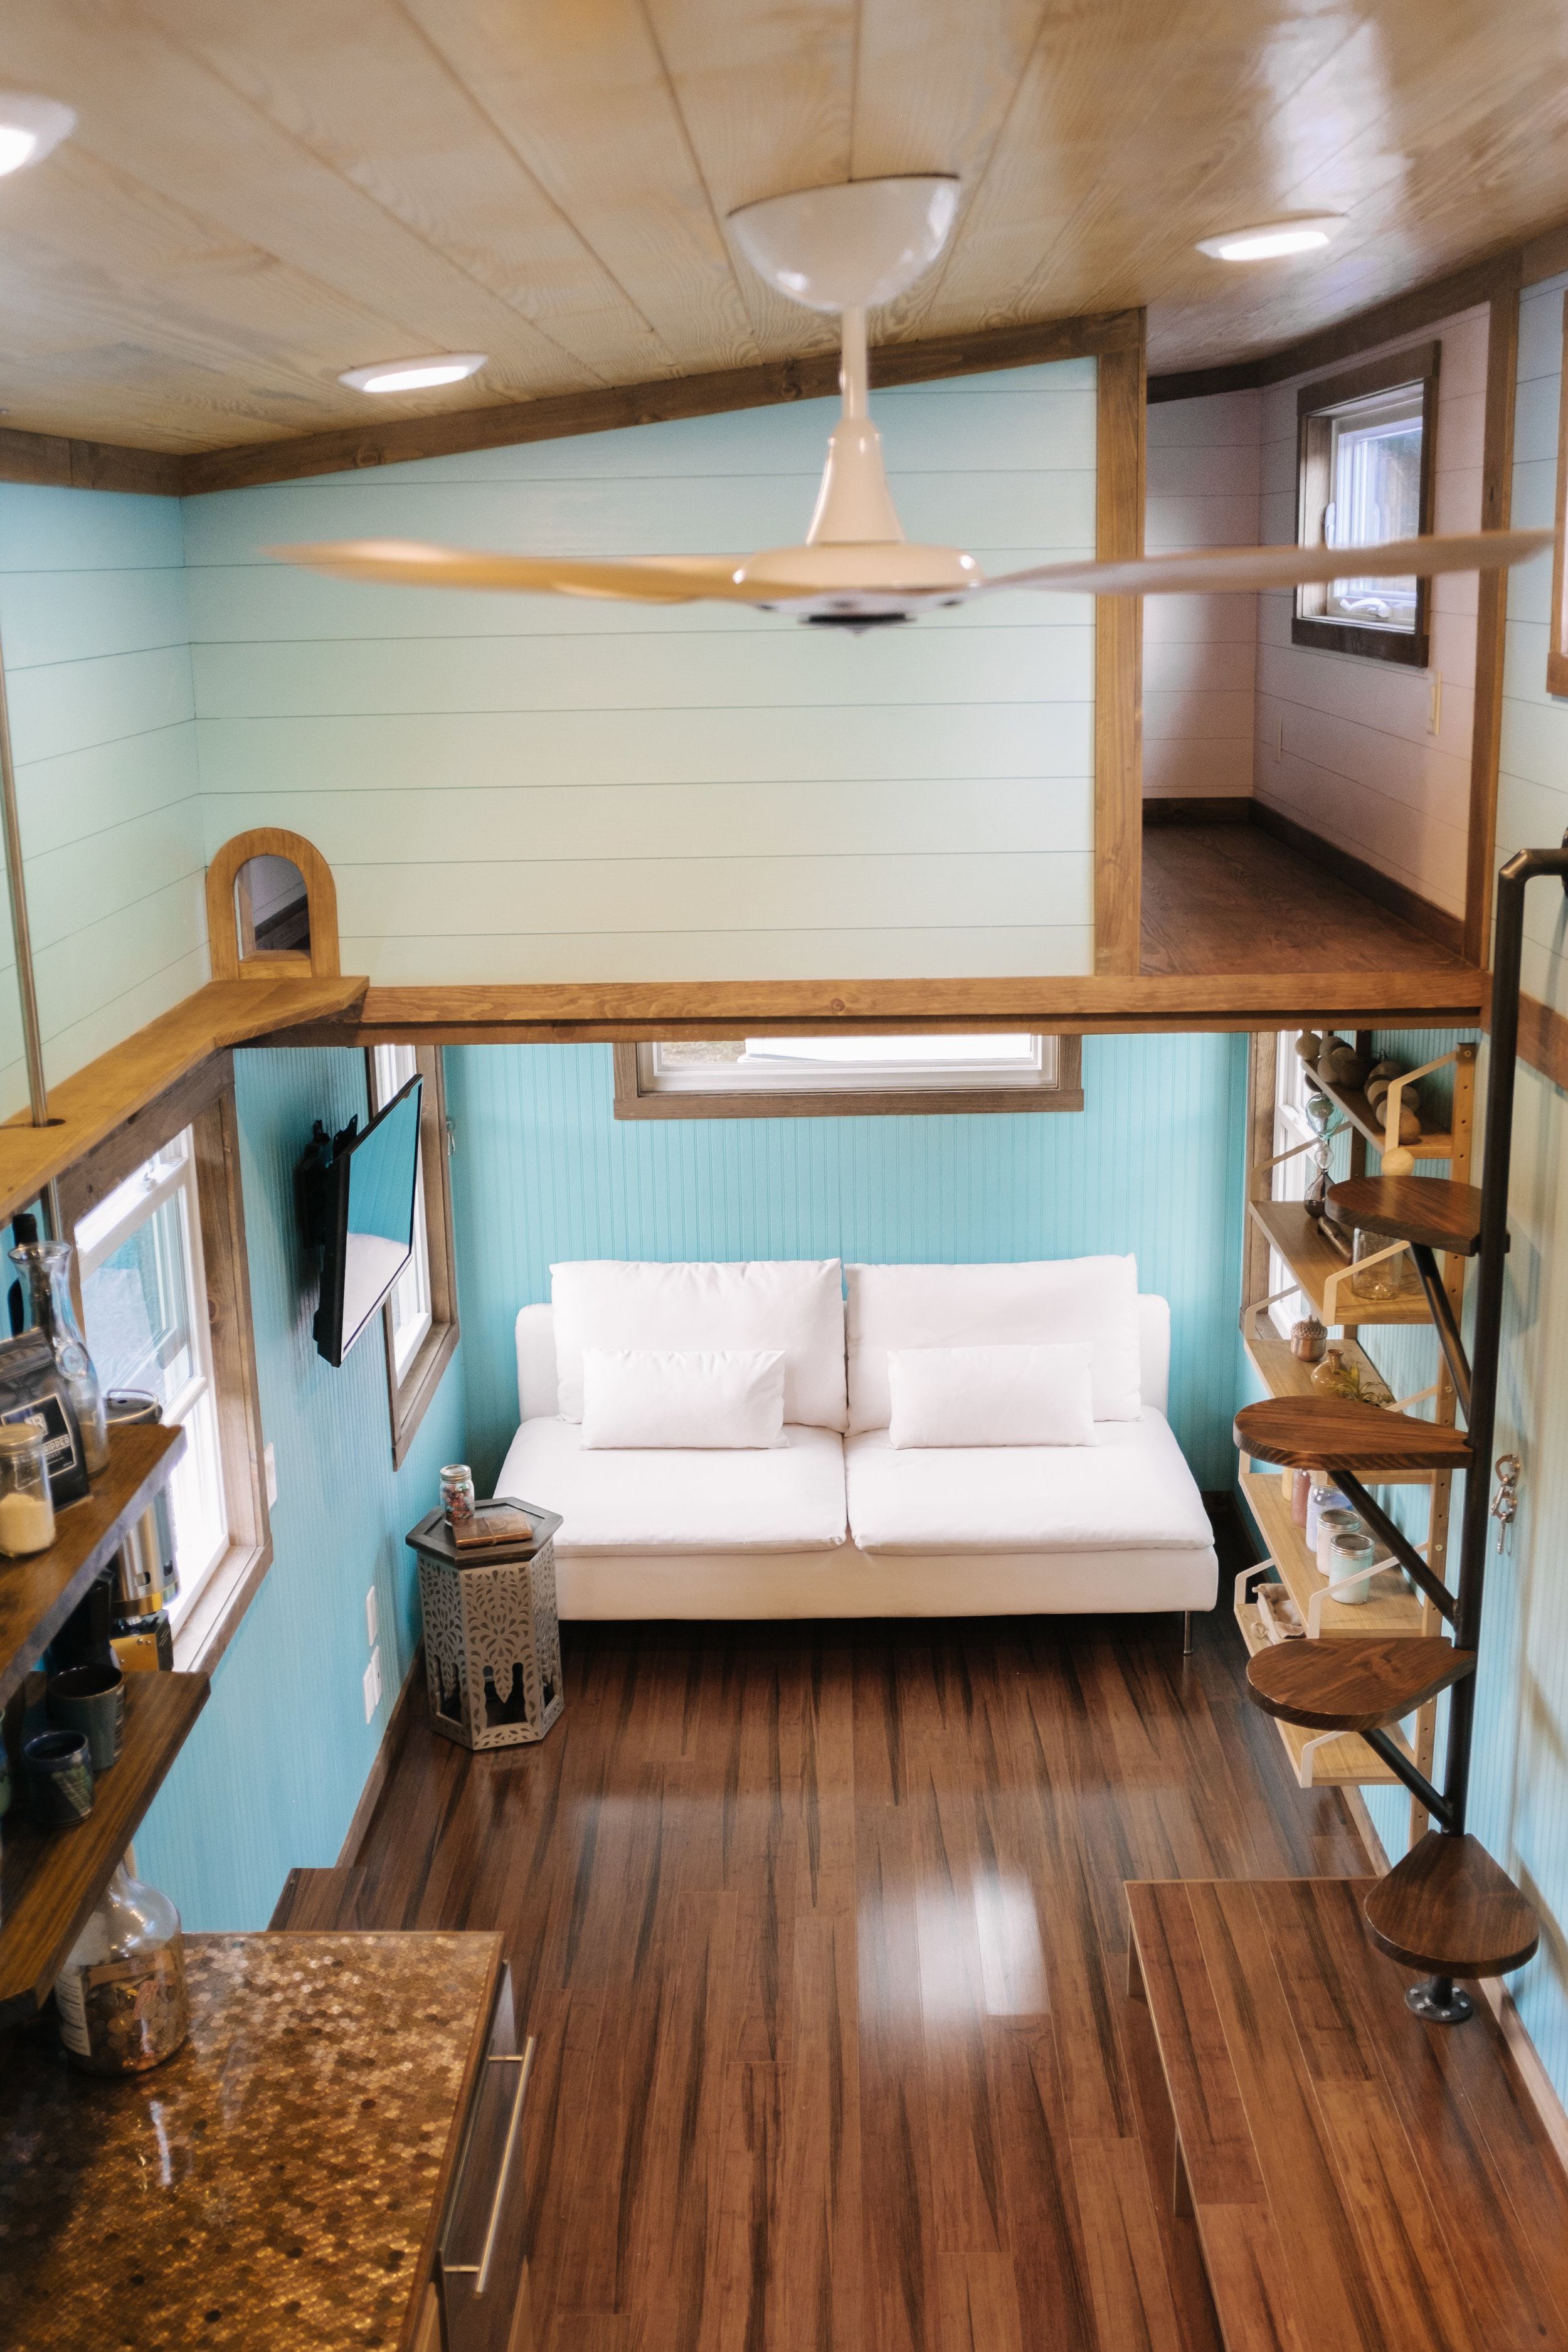 The Big Whimsy by Wind River Tiny Homes - Haiku ceiling fan, custom lily pad spiral stairs, cat walk between lofts, bamboo flooring, built in storage stairs